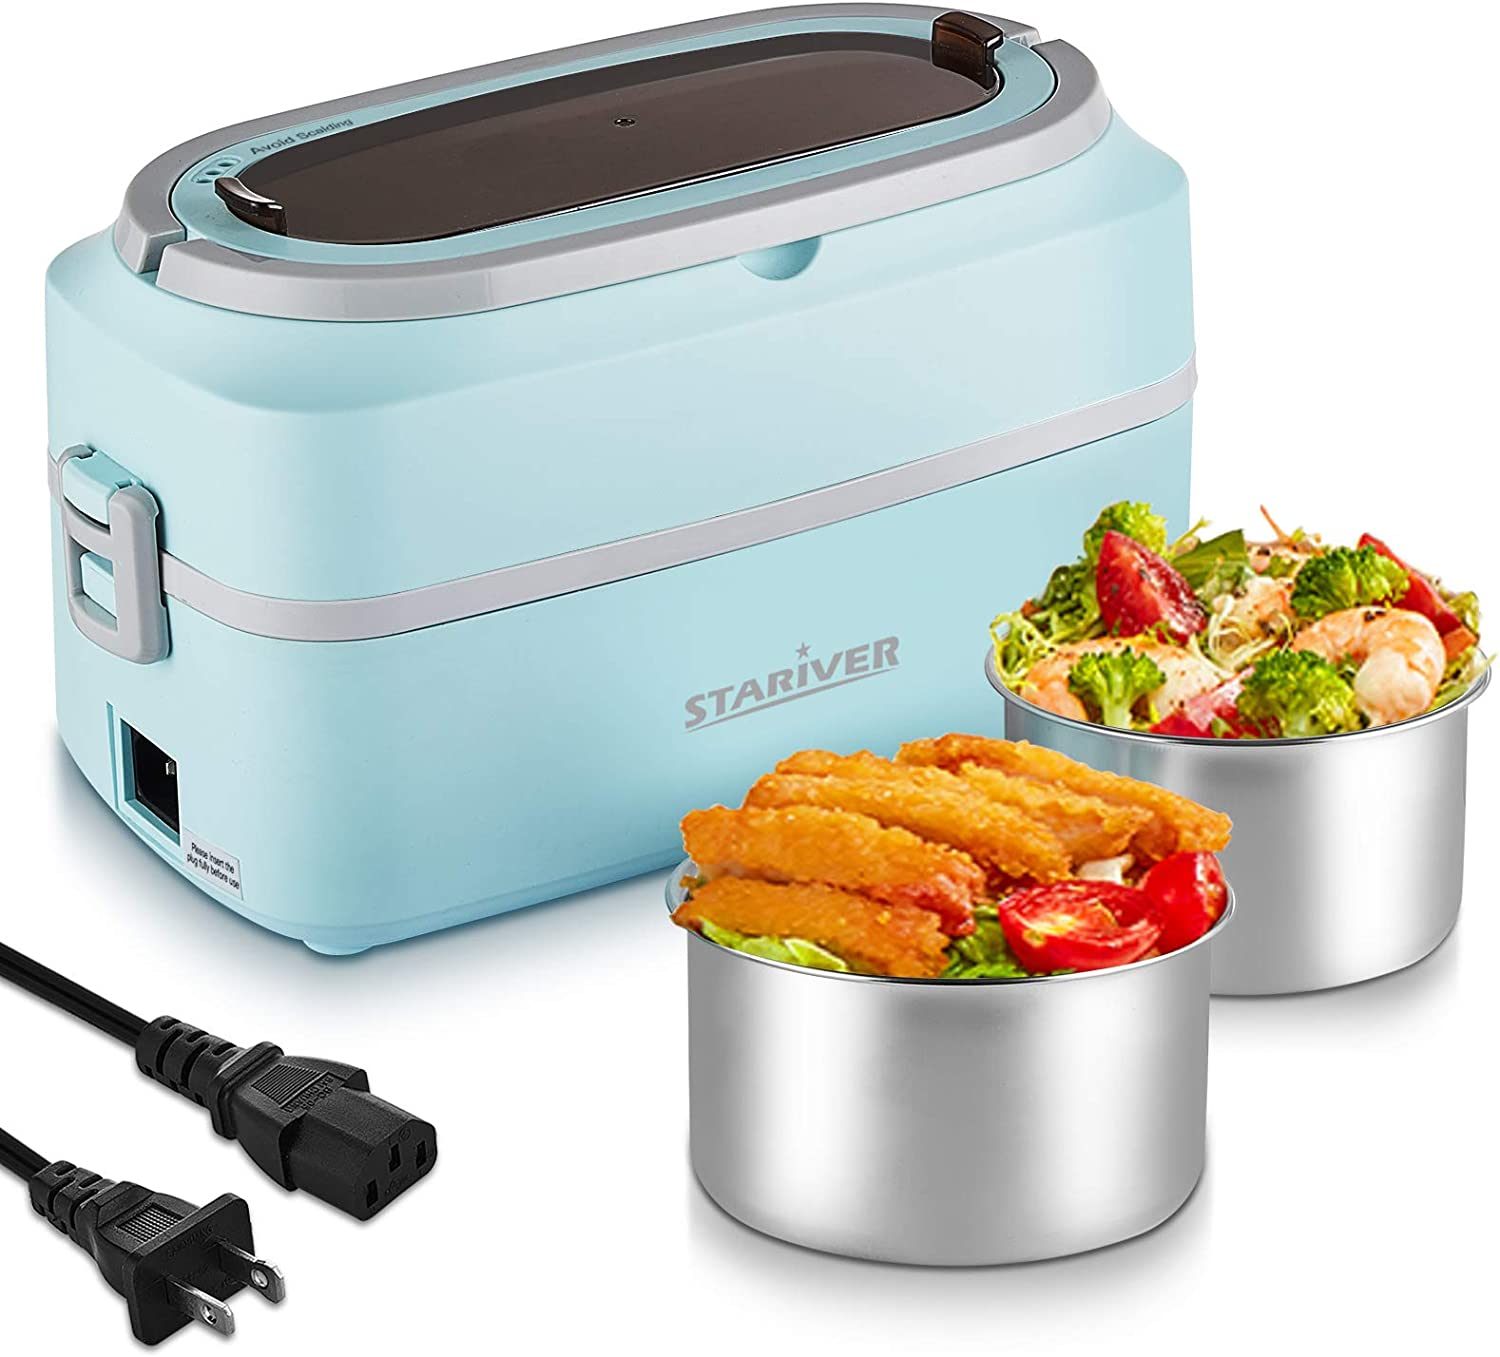 Stariver Electric Lunch Box, Portable Food Warmer, 1L Mini Rice Cooker, Food Steamer with 304 Stainless Steel Removable and Leak-Proof Containers for Home, Office, School and Travel, Blue